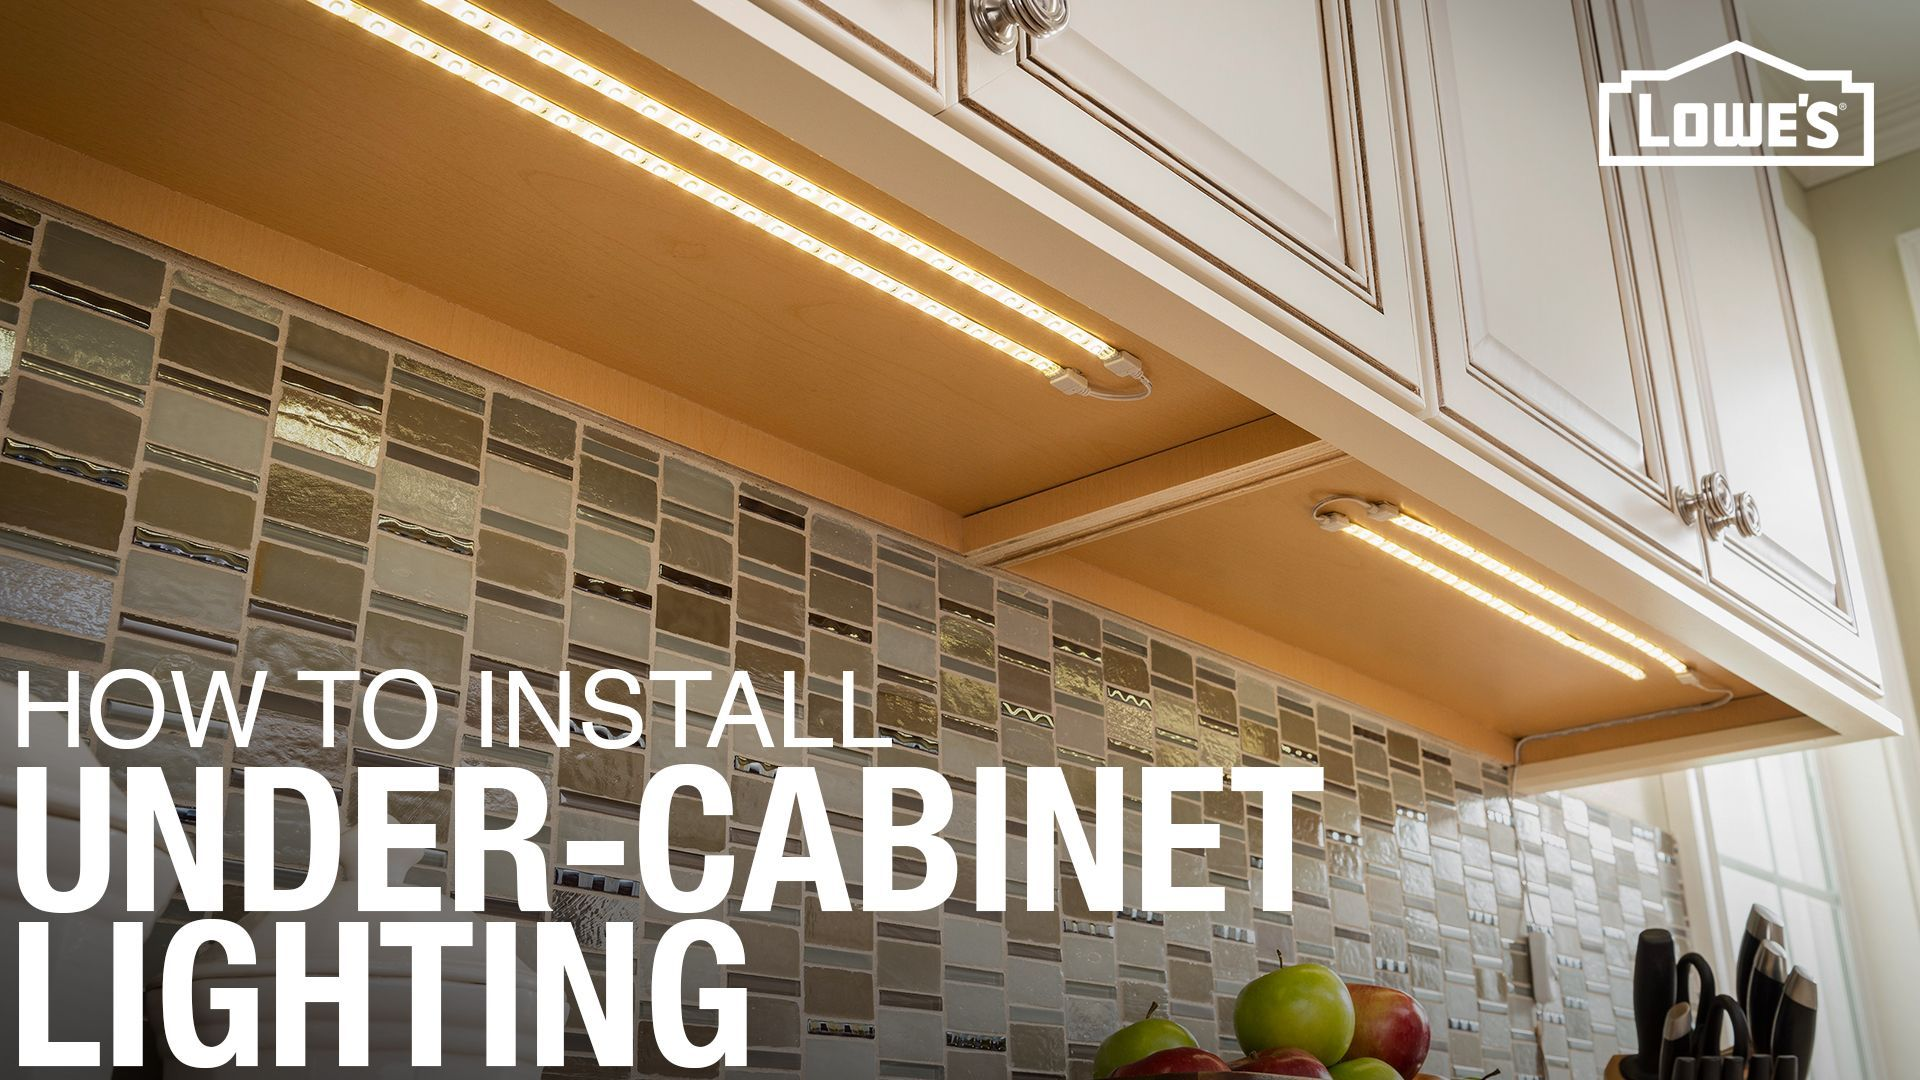 How To Install Under Cabinet Lighting Installing Under Cabinet Lighting Cabinet Lighting Kitchen Under Cabinet Lighting